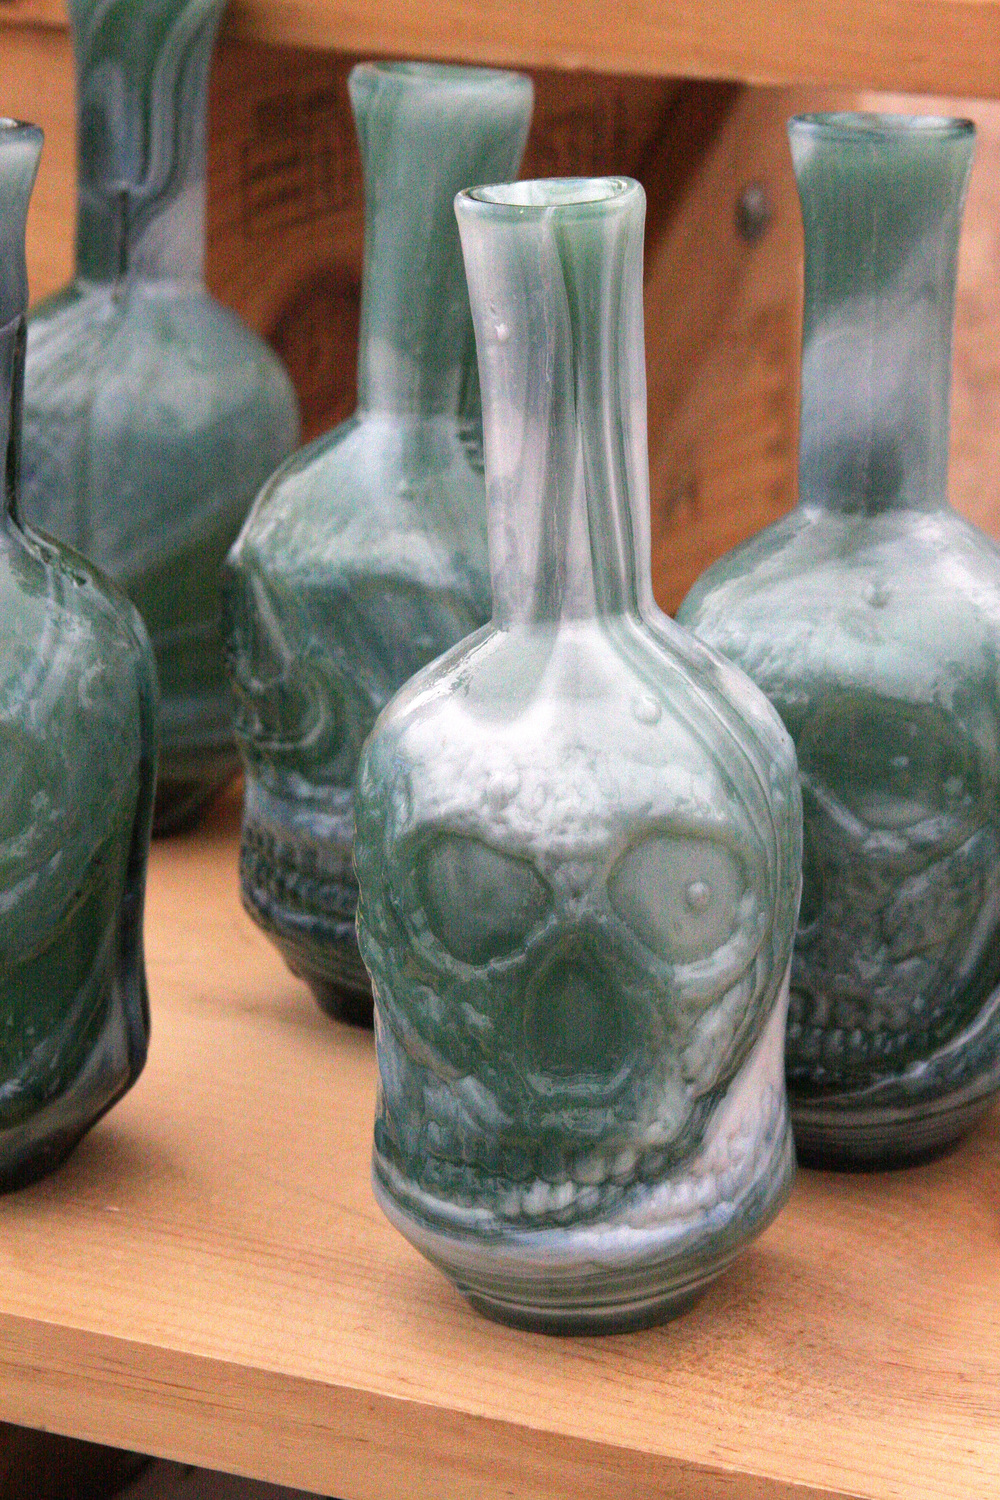 I actually thought these 'pirate inspired' vases or whatever were pretty cool!